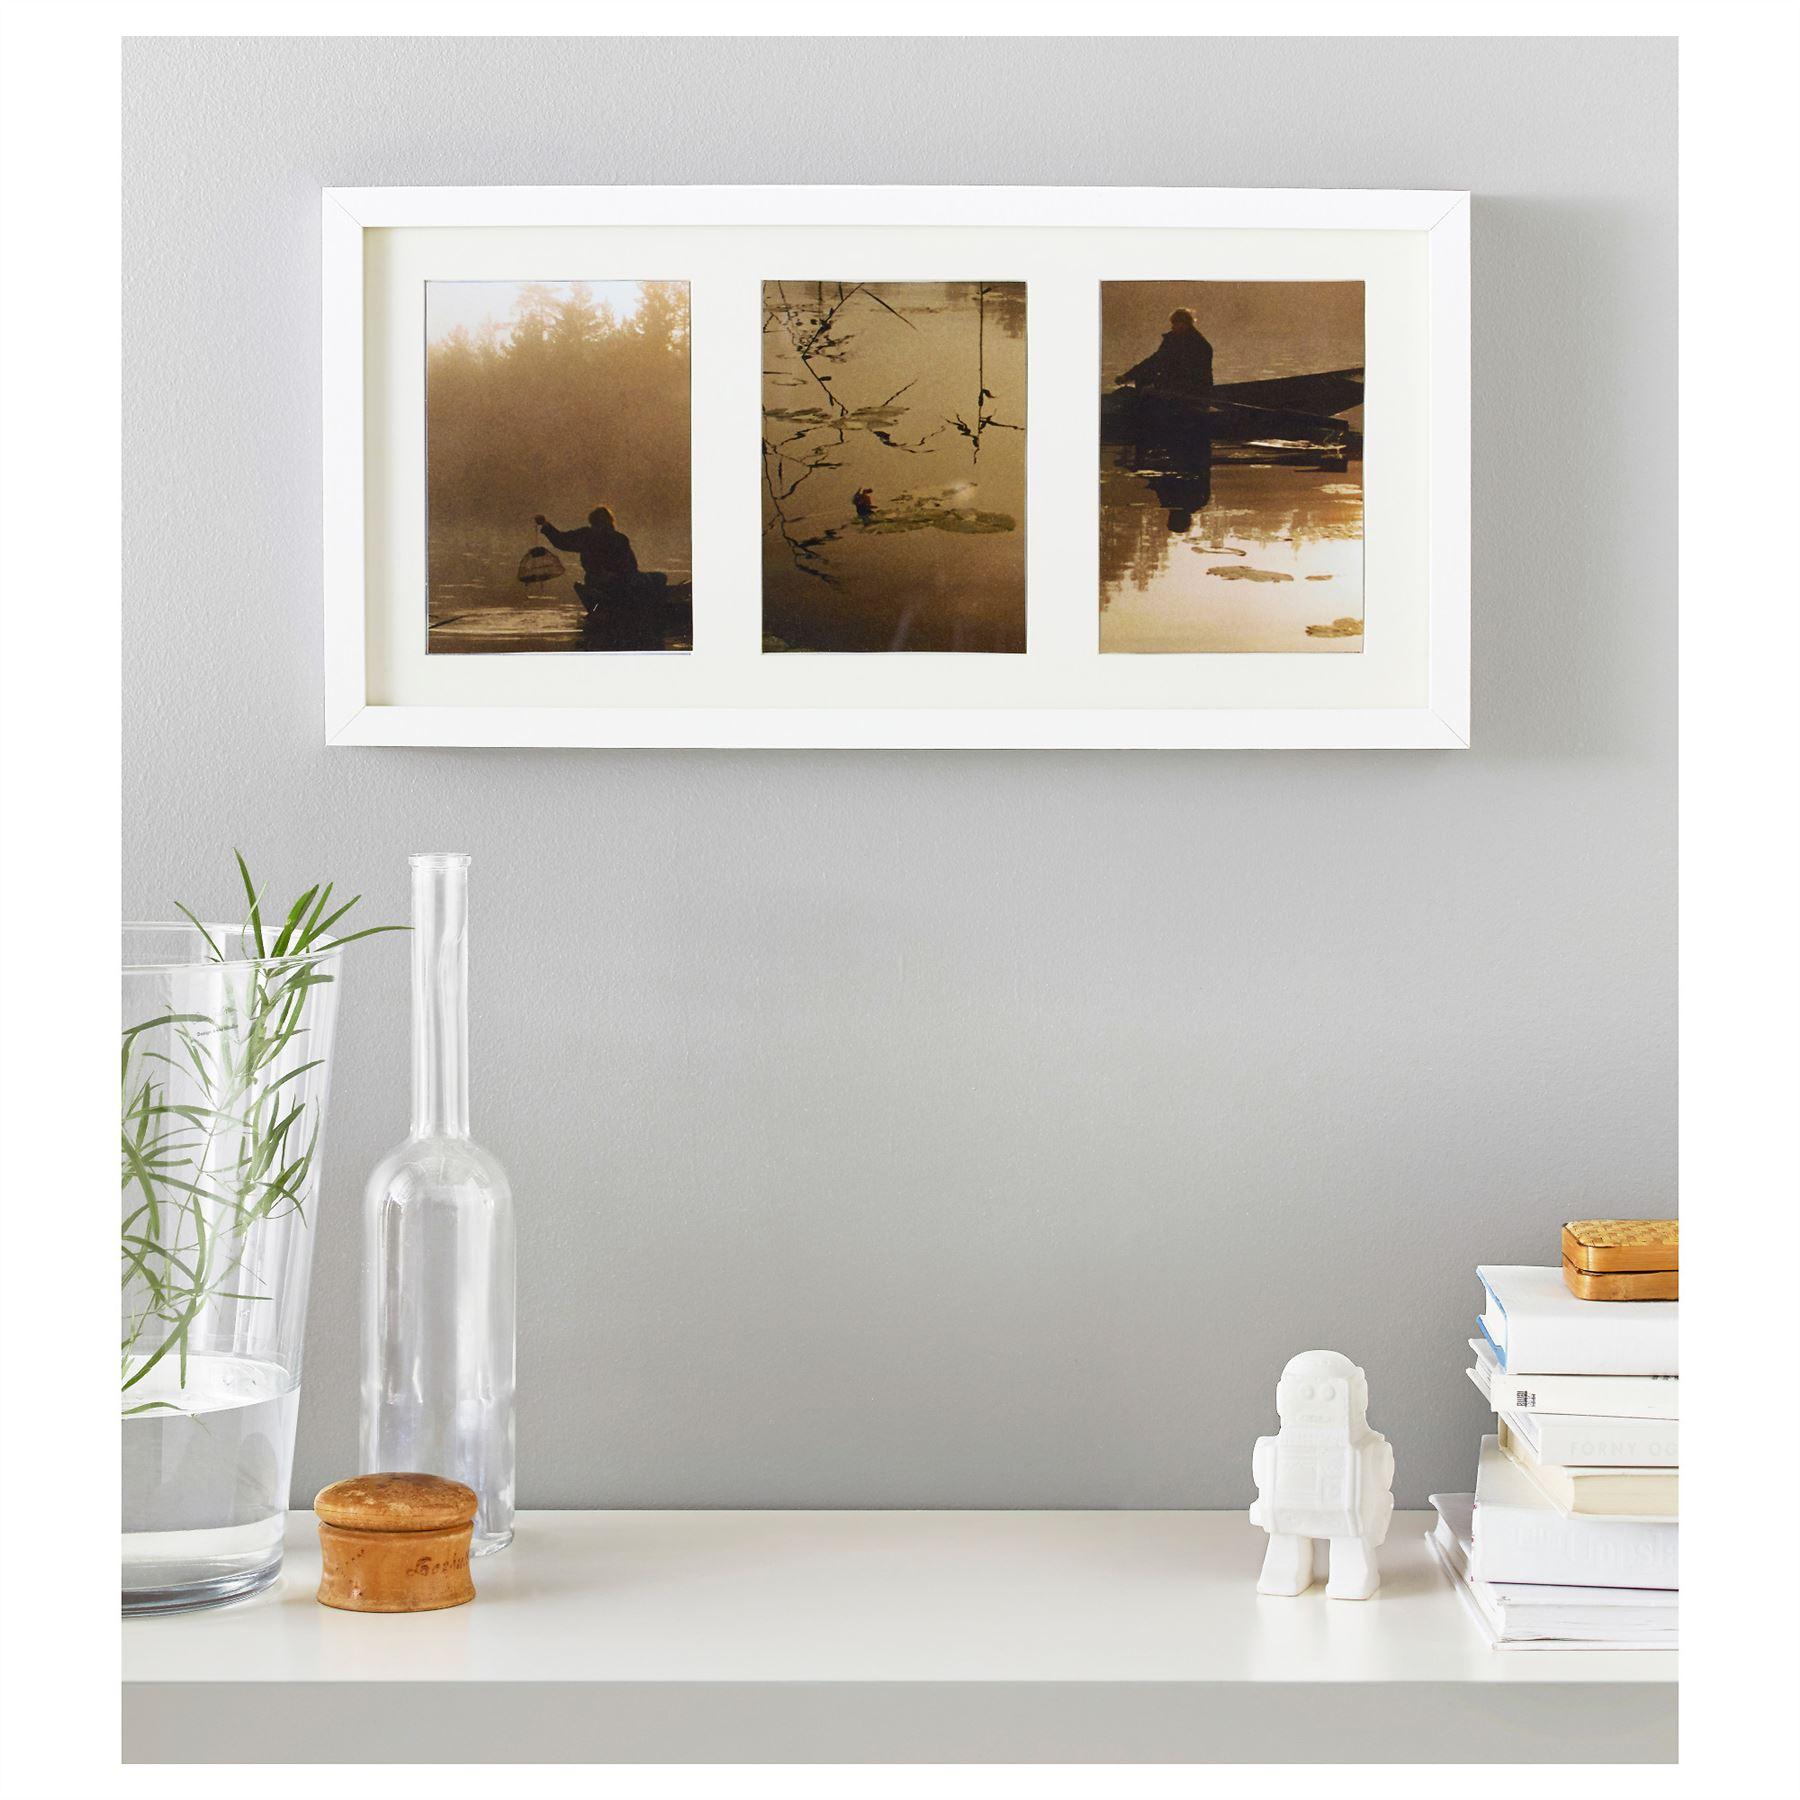 Ikea ribba picture photo frame white home bedroom living room ikea ribba picture photo frame white home bedroom living room 50x23cm jeuxipadfo Images